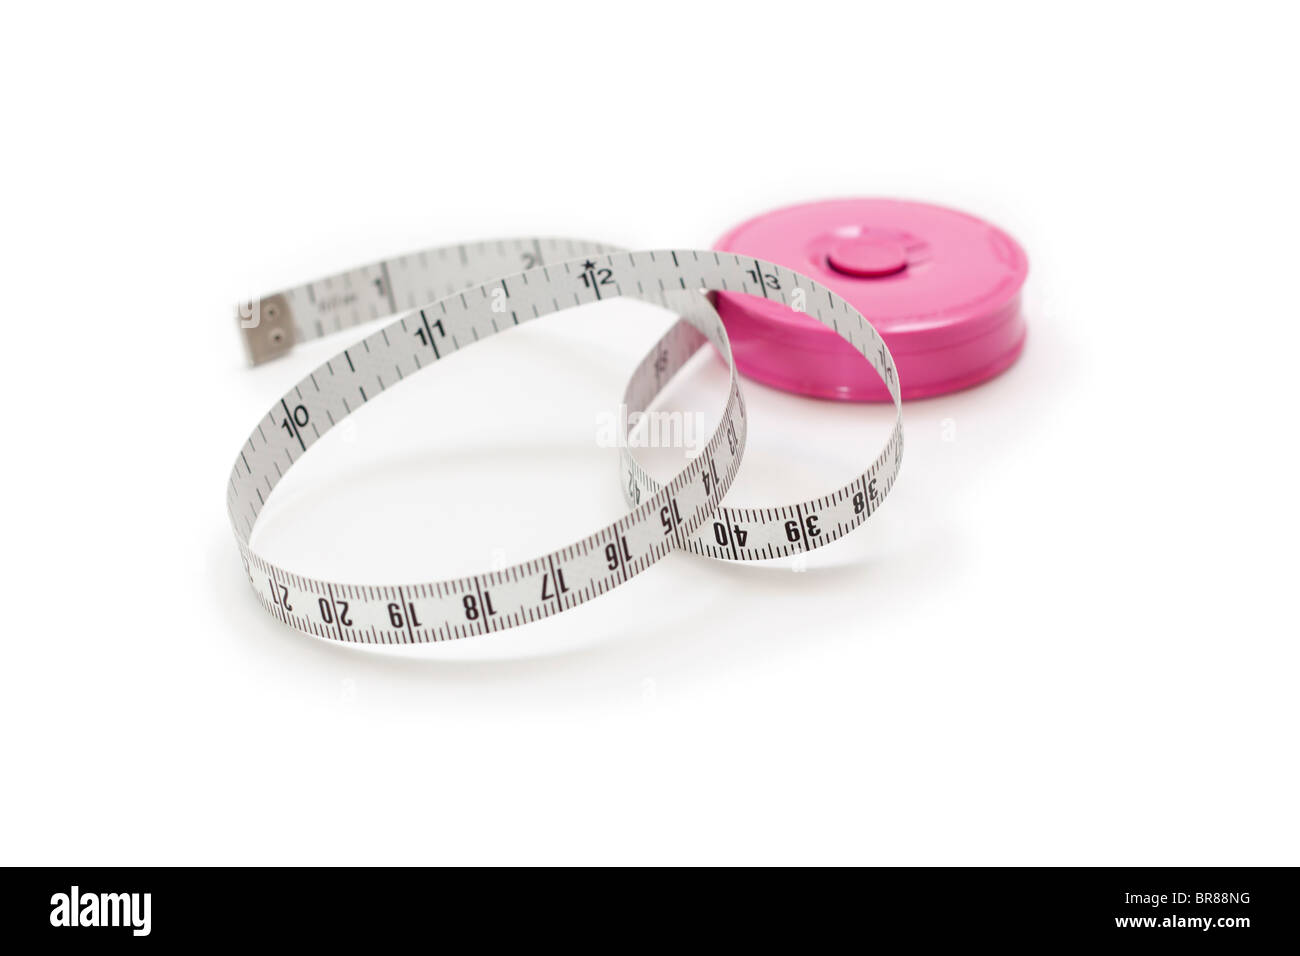 Tape measure with inches and centimeters Stock Photo